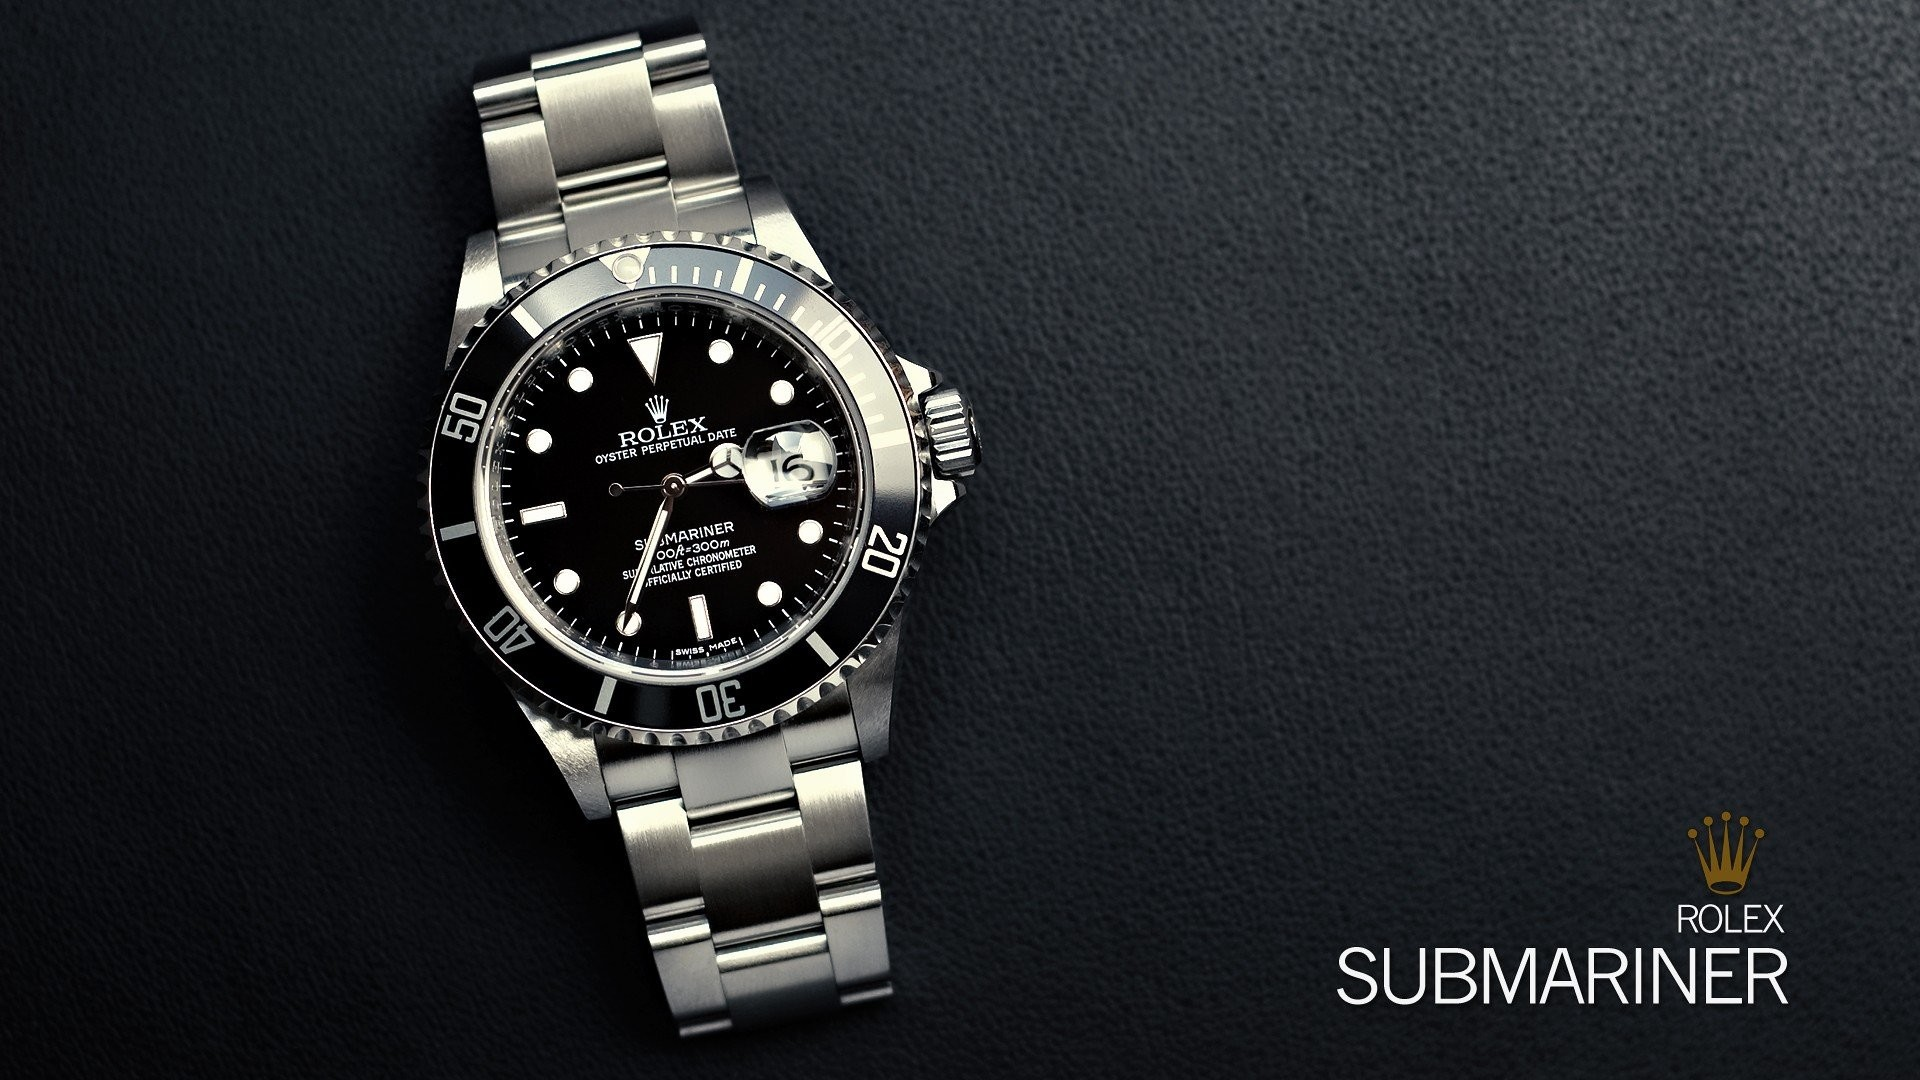 1440x2560 1440x2560 Wallpaper rolex, submariner 116610, watches, classic, quality, brand